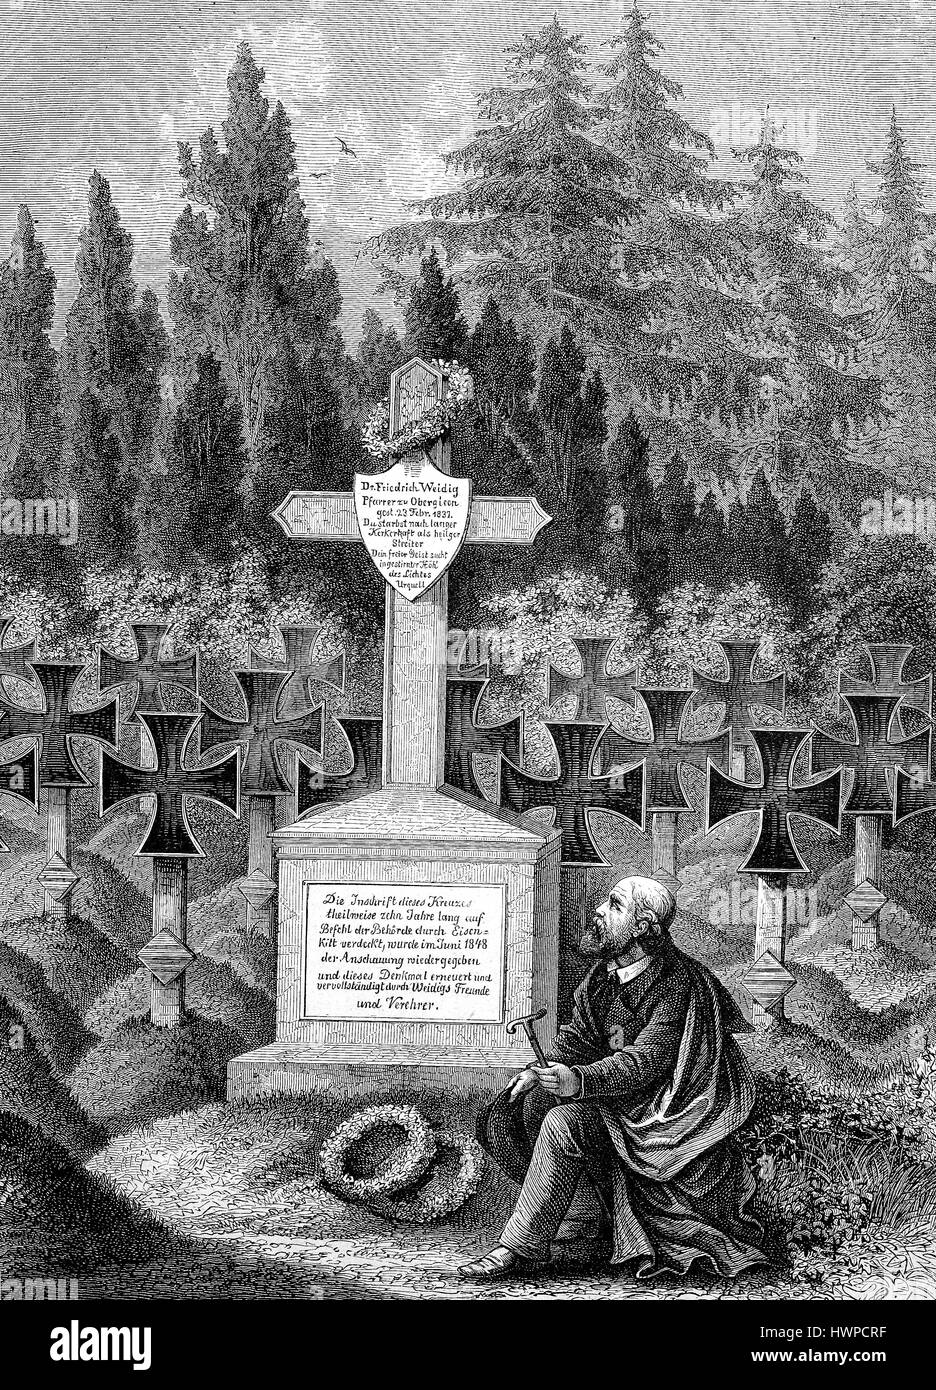 Man mourner at the tomb of Frederick Weidig at the cemetery in Darmstadt, Germany. Friedrich Ludwig Weidig, 1791 - Stock Image